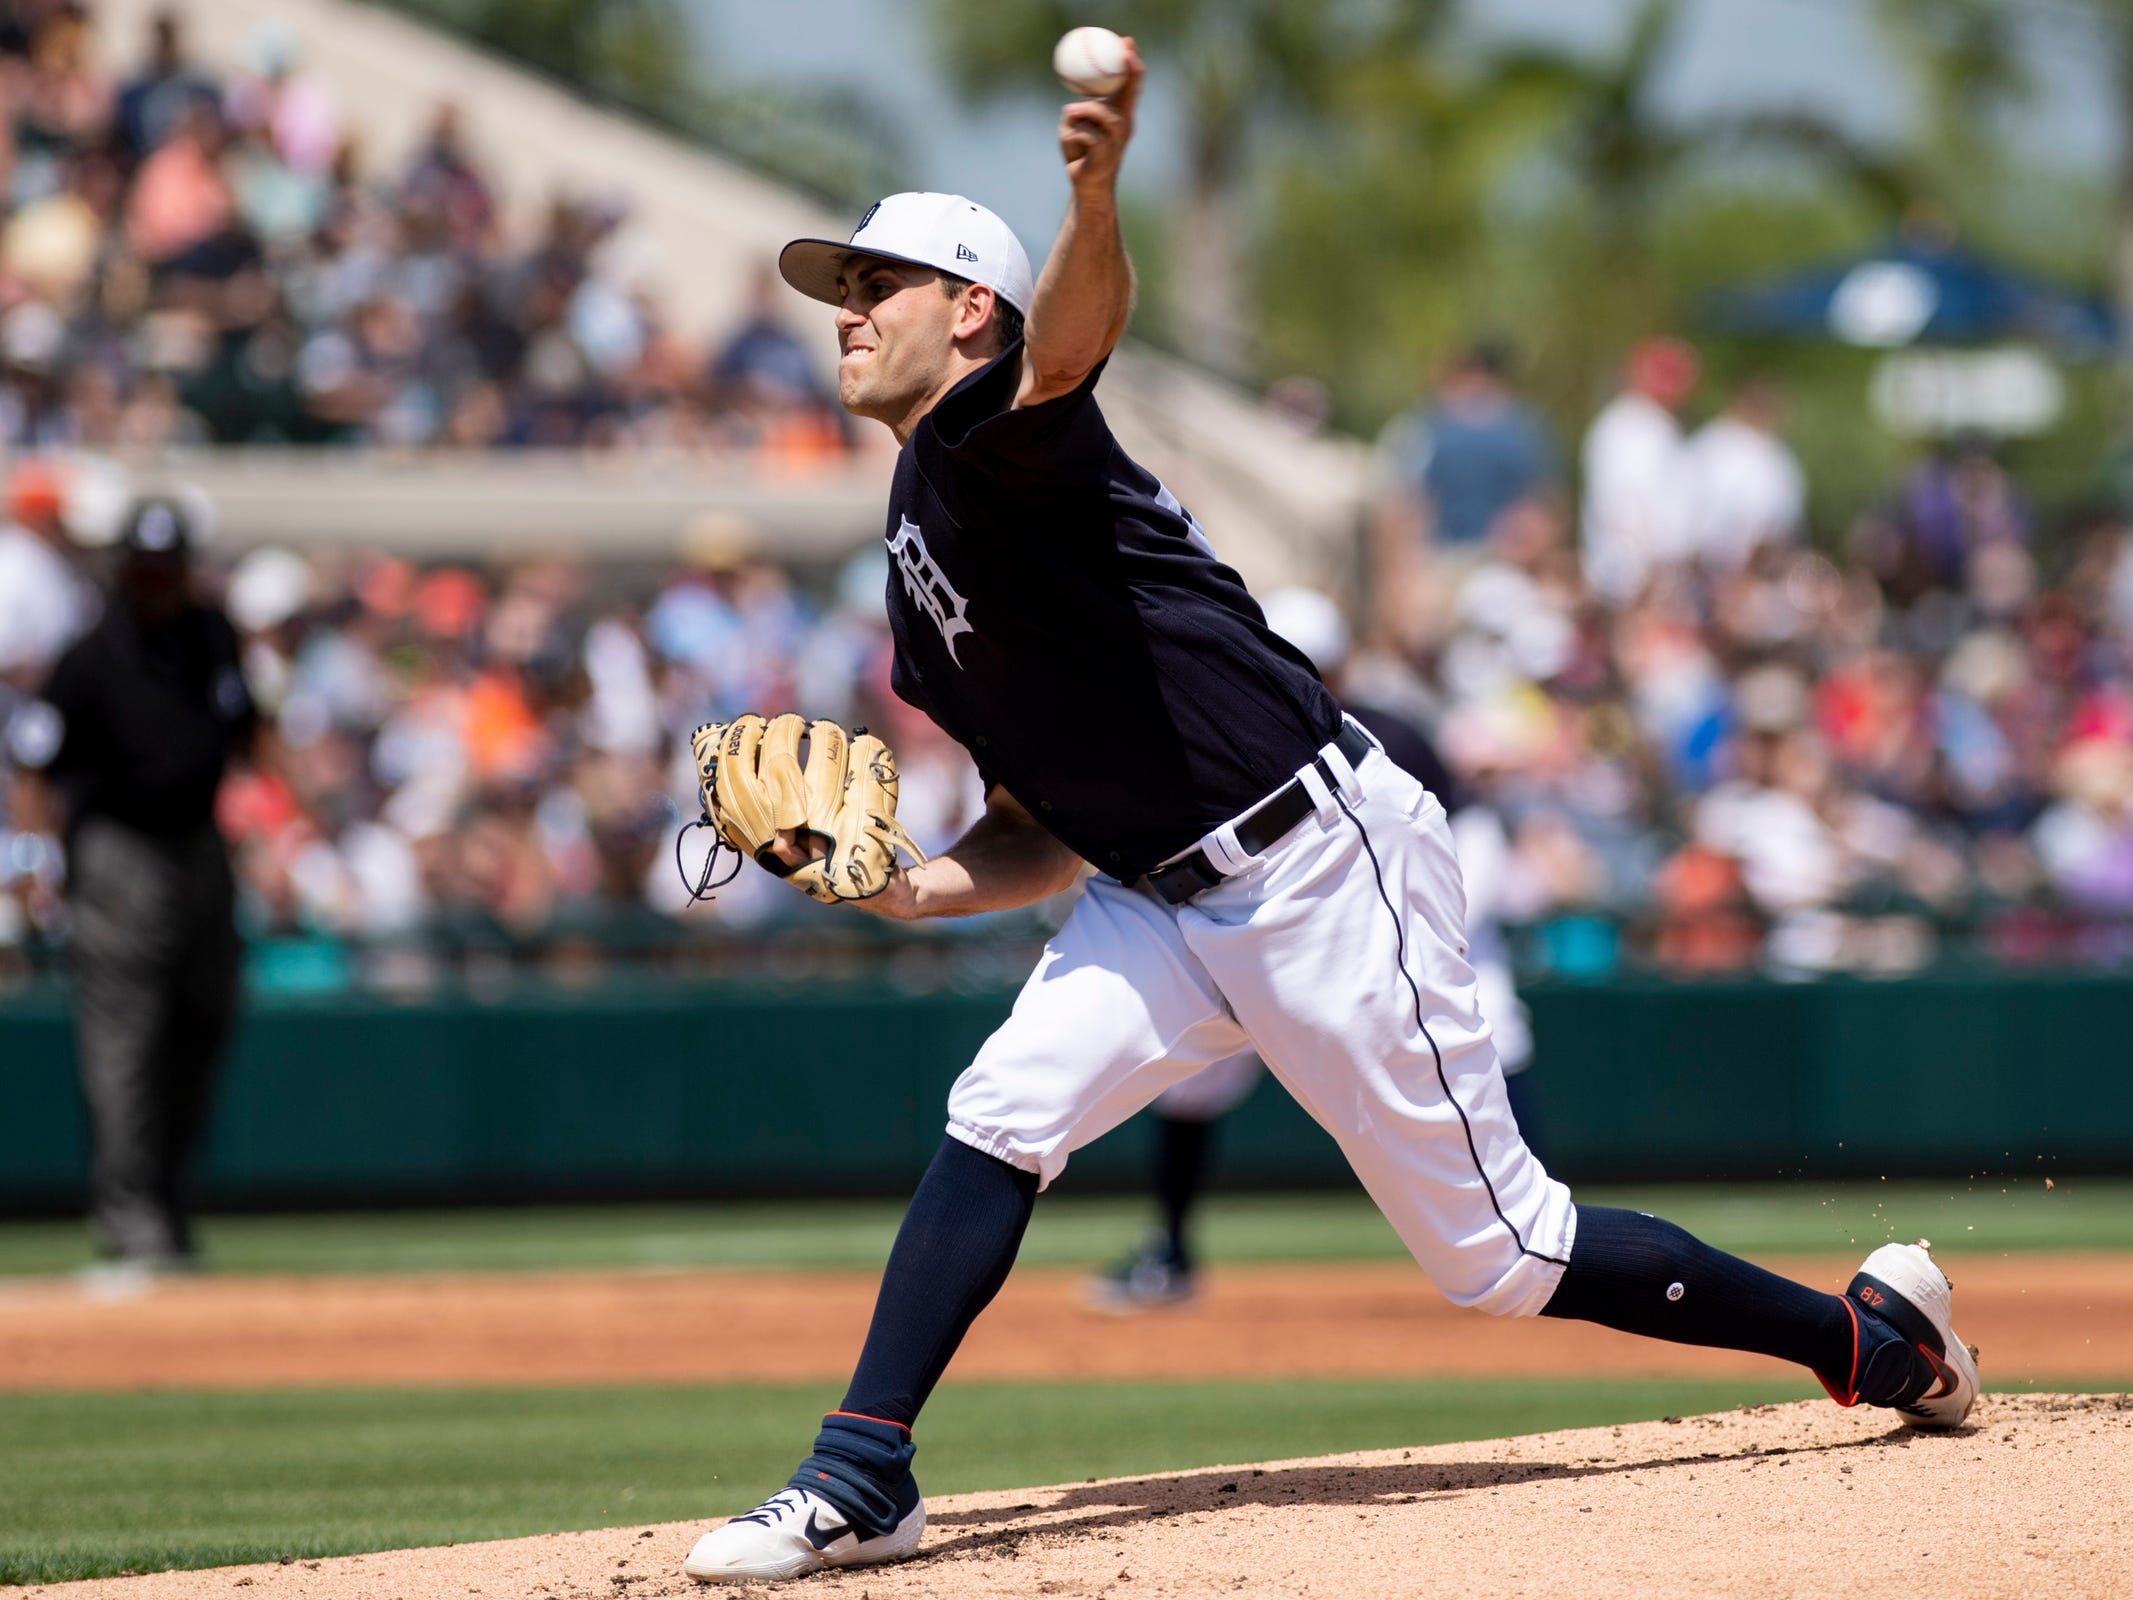 Detroit Tigers pitcher Matthew Boyd throws a pitch during the second inning against the Boston Red Sox at Joker Marchant Stadium, March 14, 2019 in Lakeland, Fla.